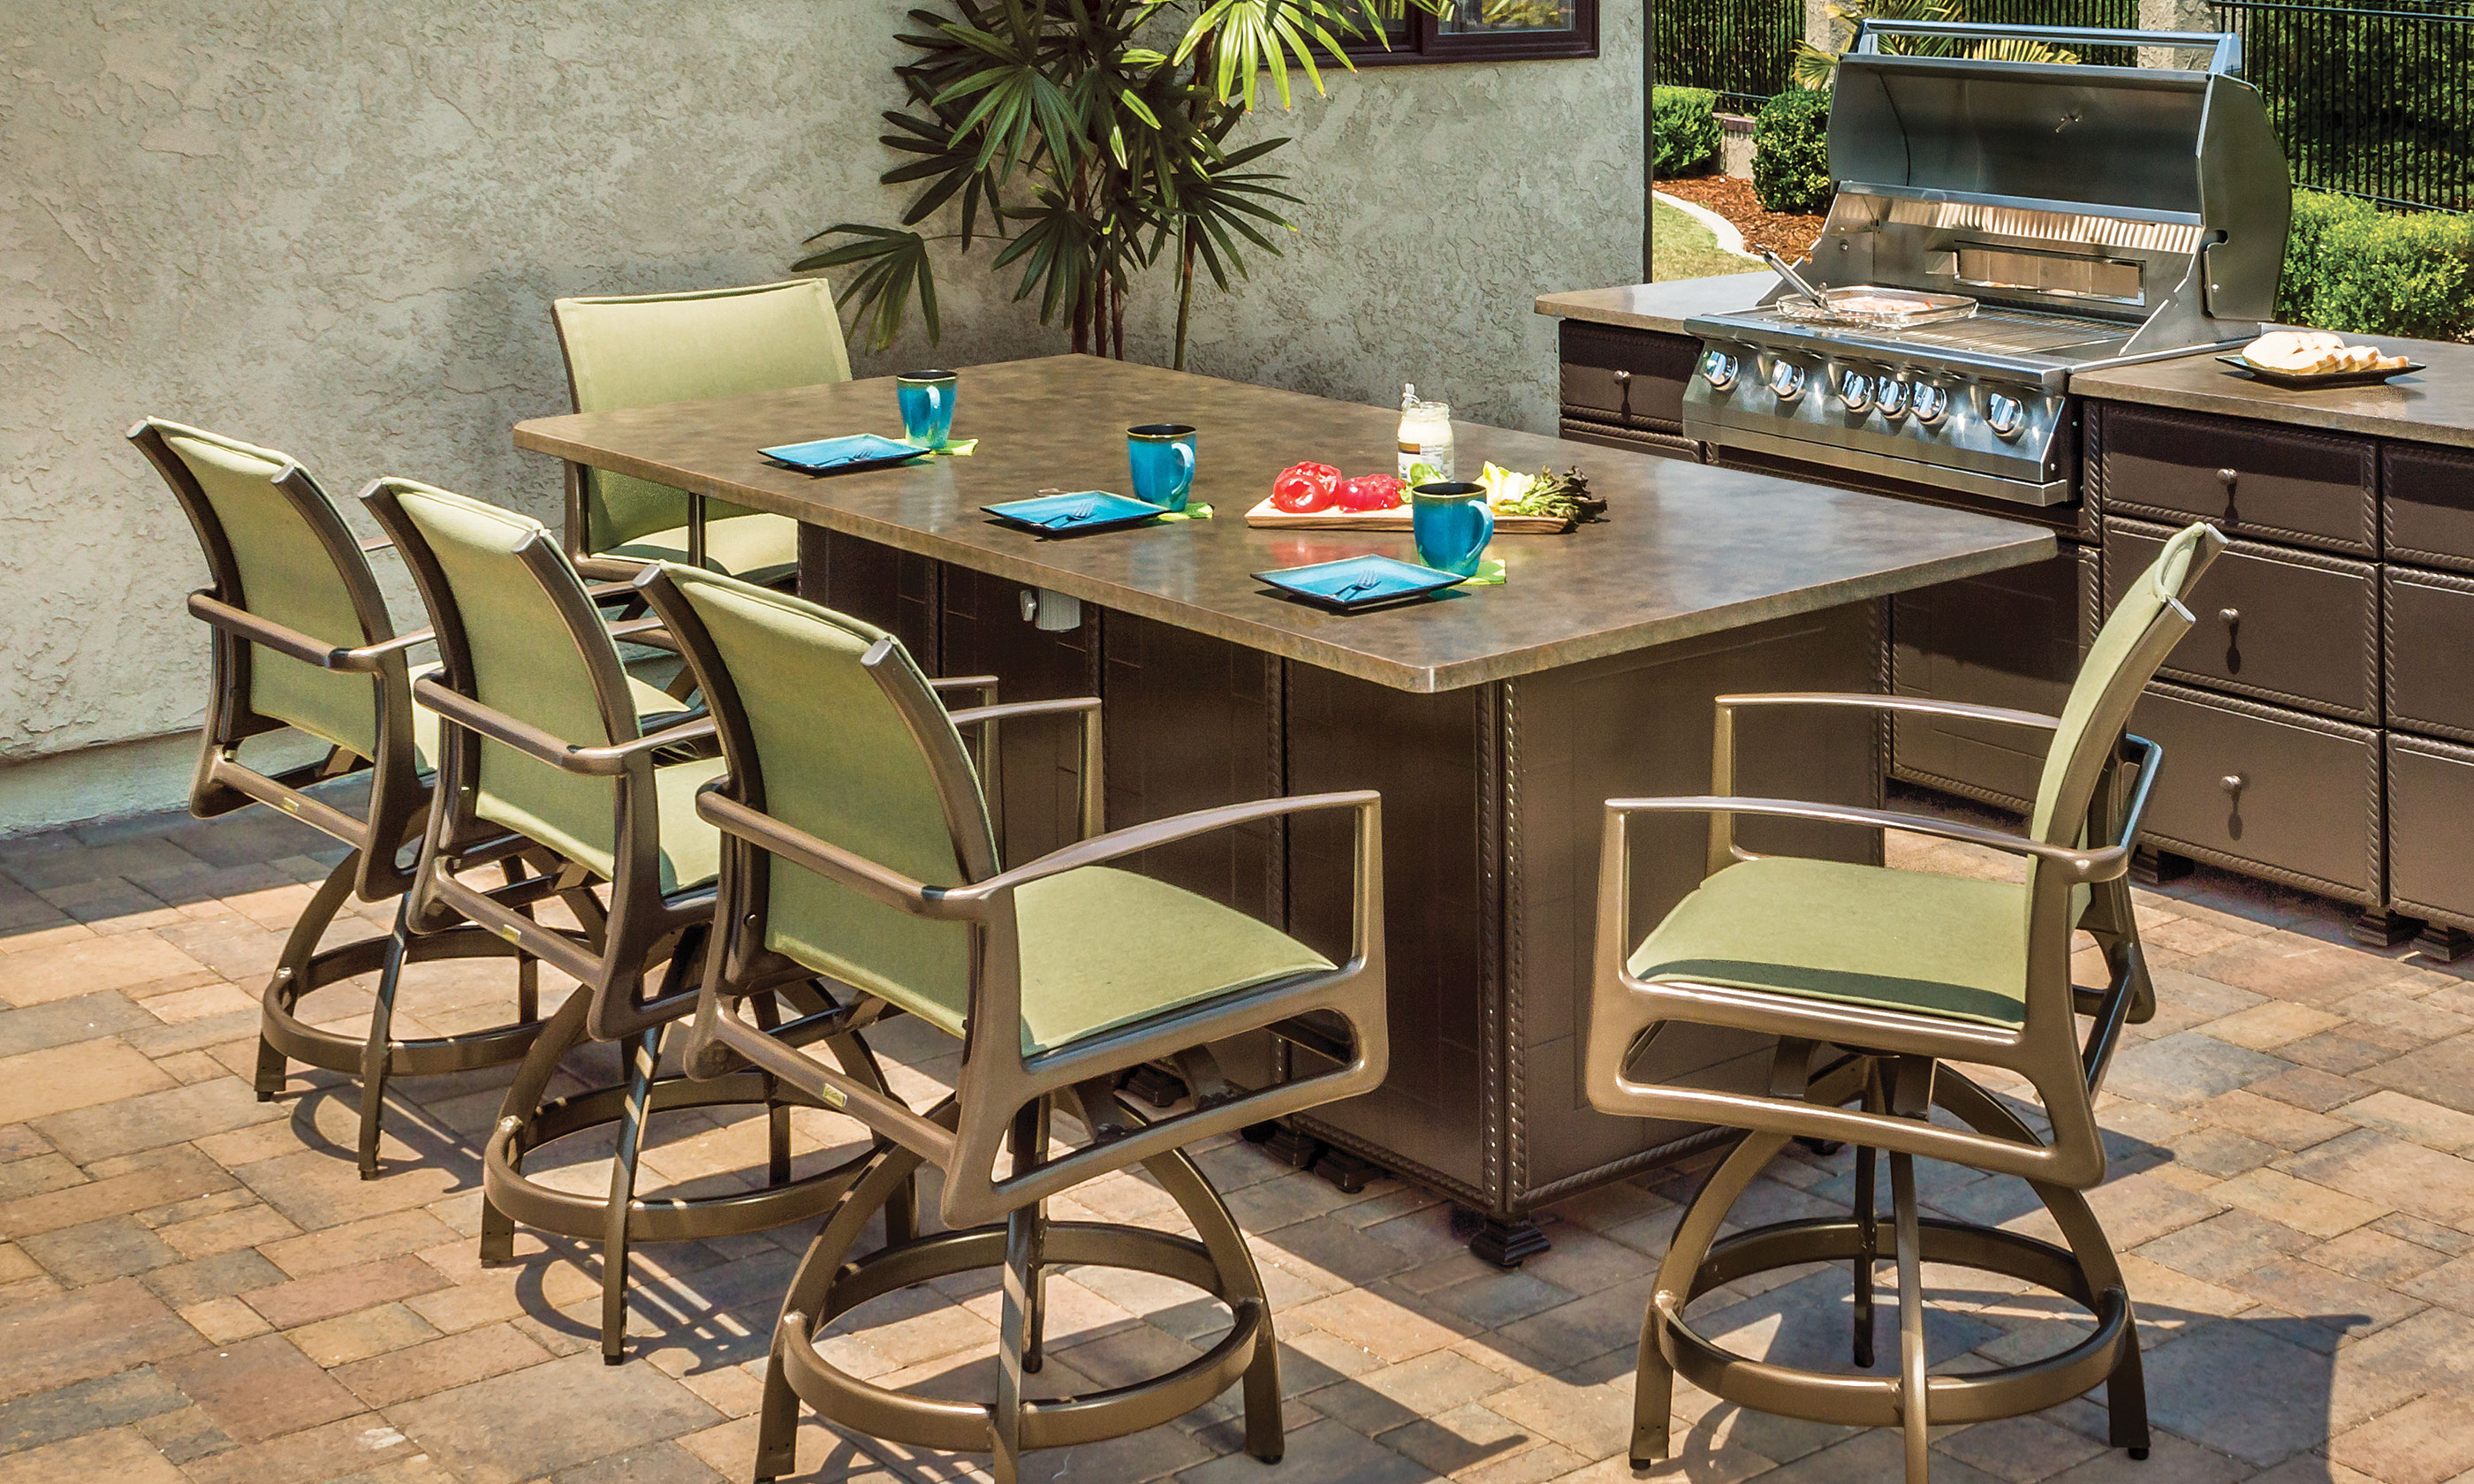 Outdoor Furniture Kitchens Gensun - Patio furniture san jose ca